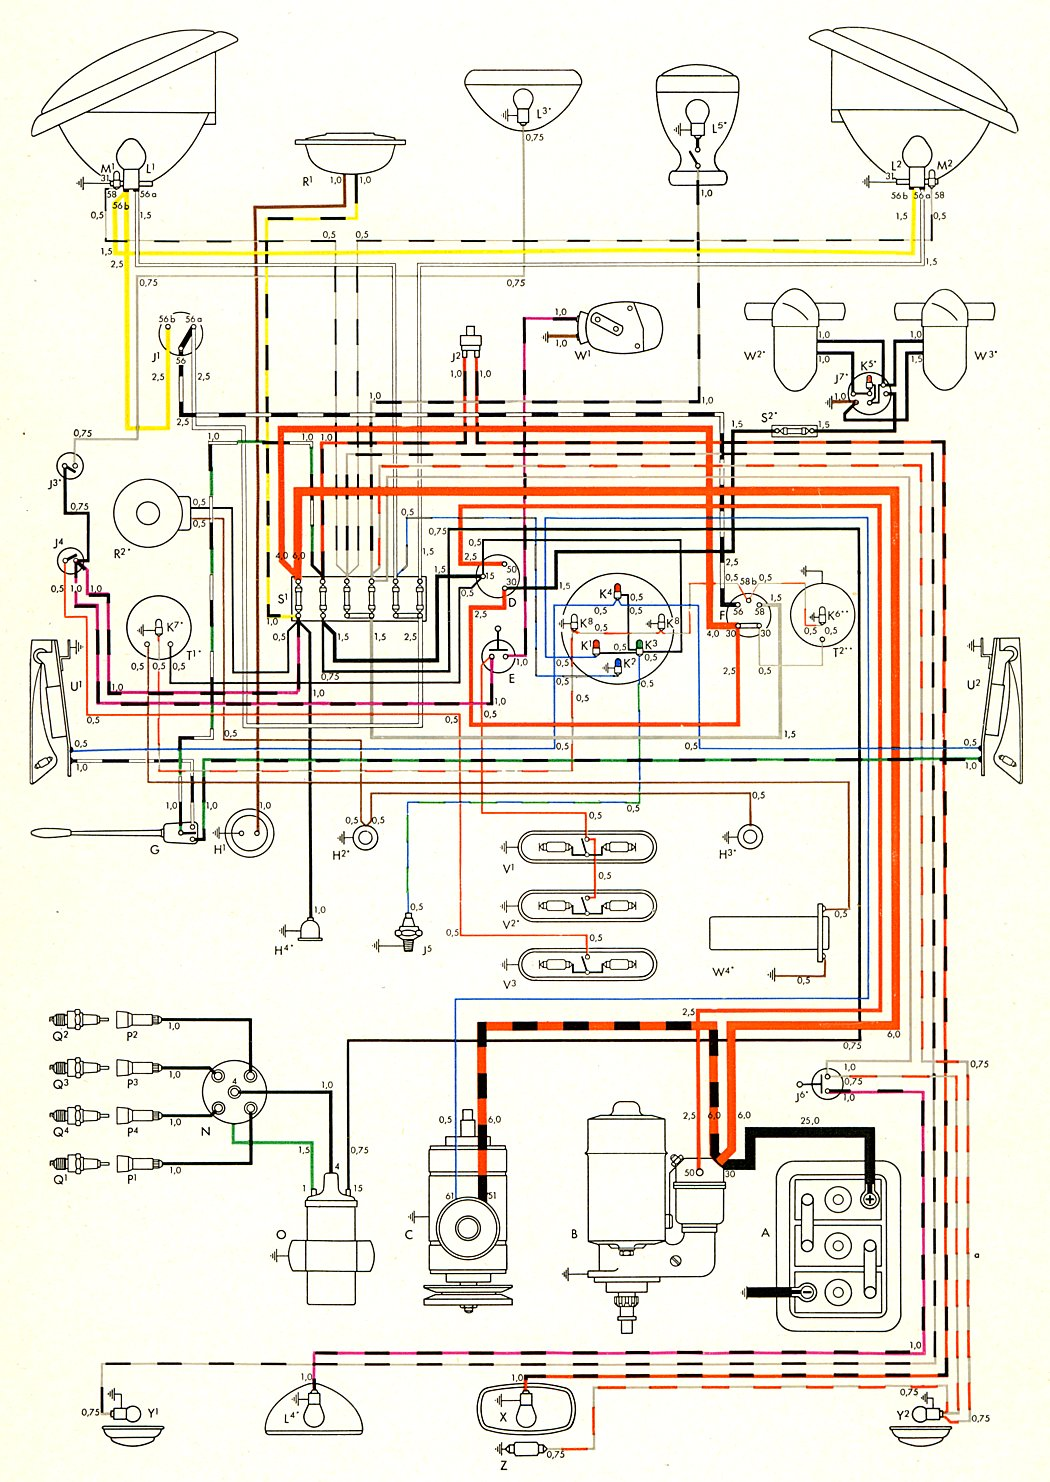 bus_nov57 1957 bus wiring diagram thegoldenbug com 1971 vw bus wiring diagram at bayanpartner.co